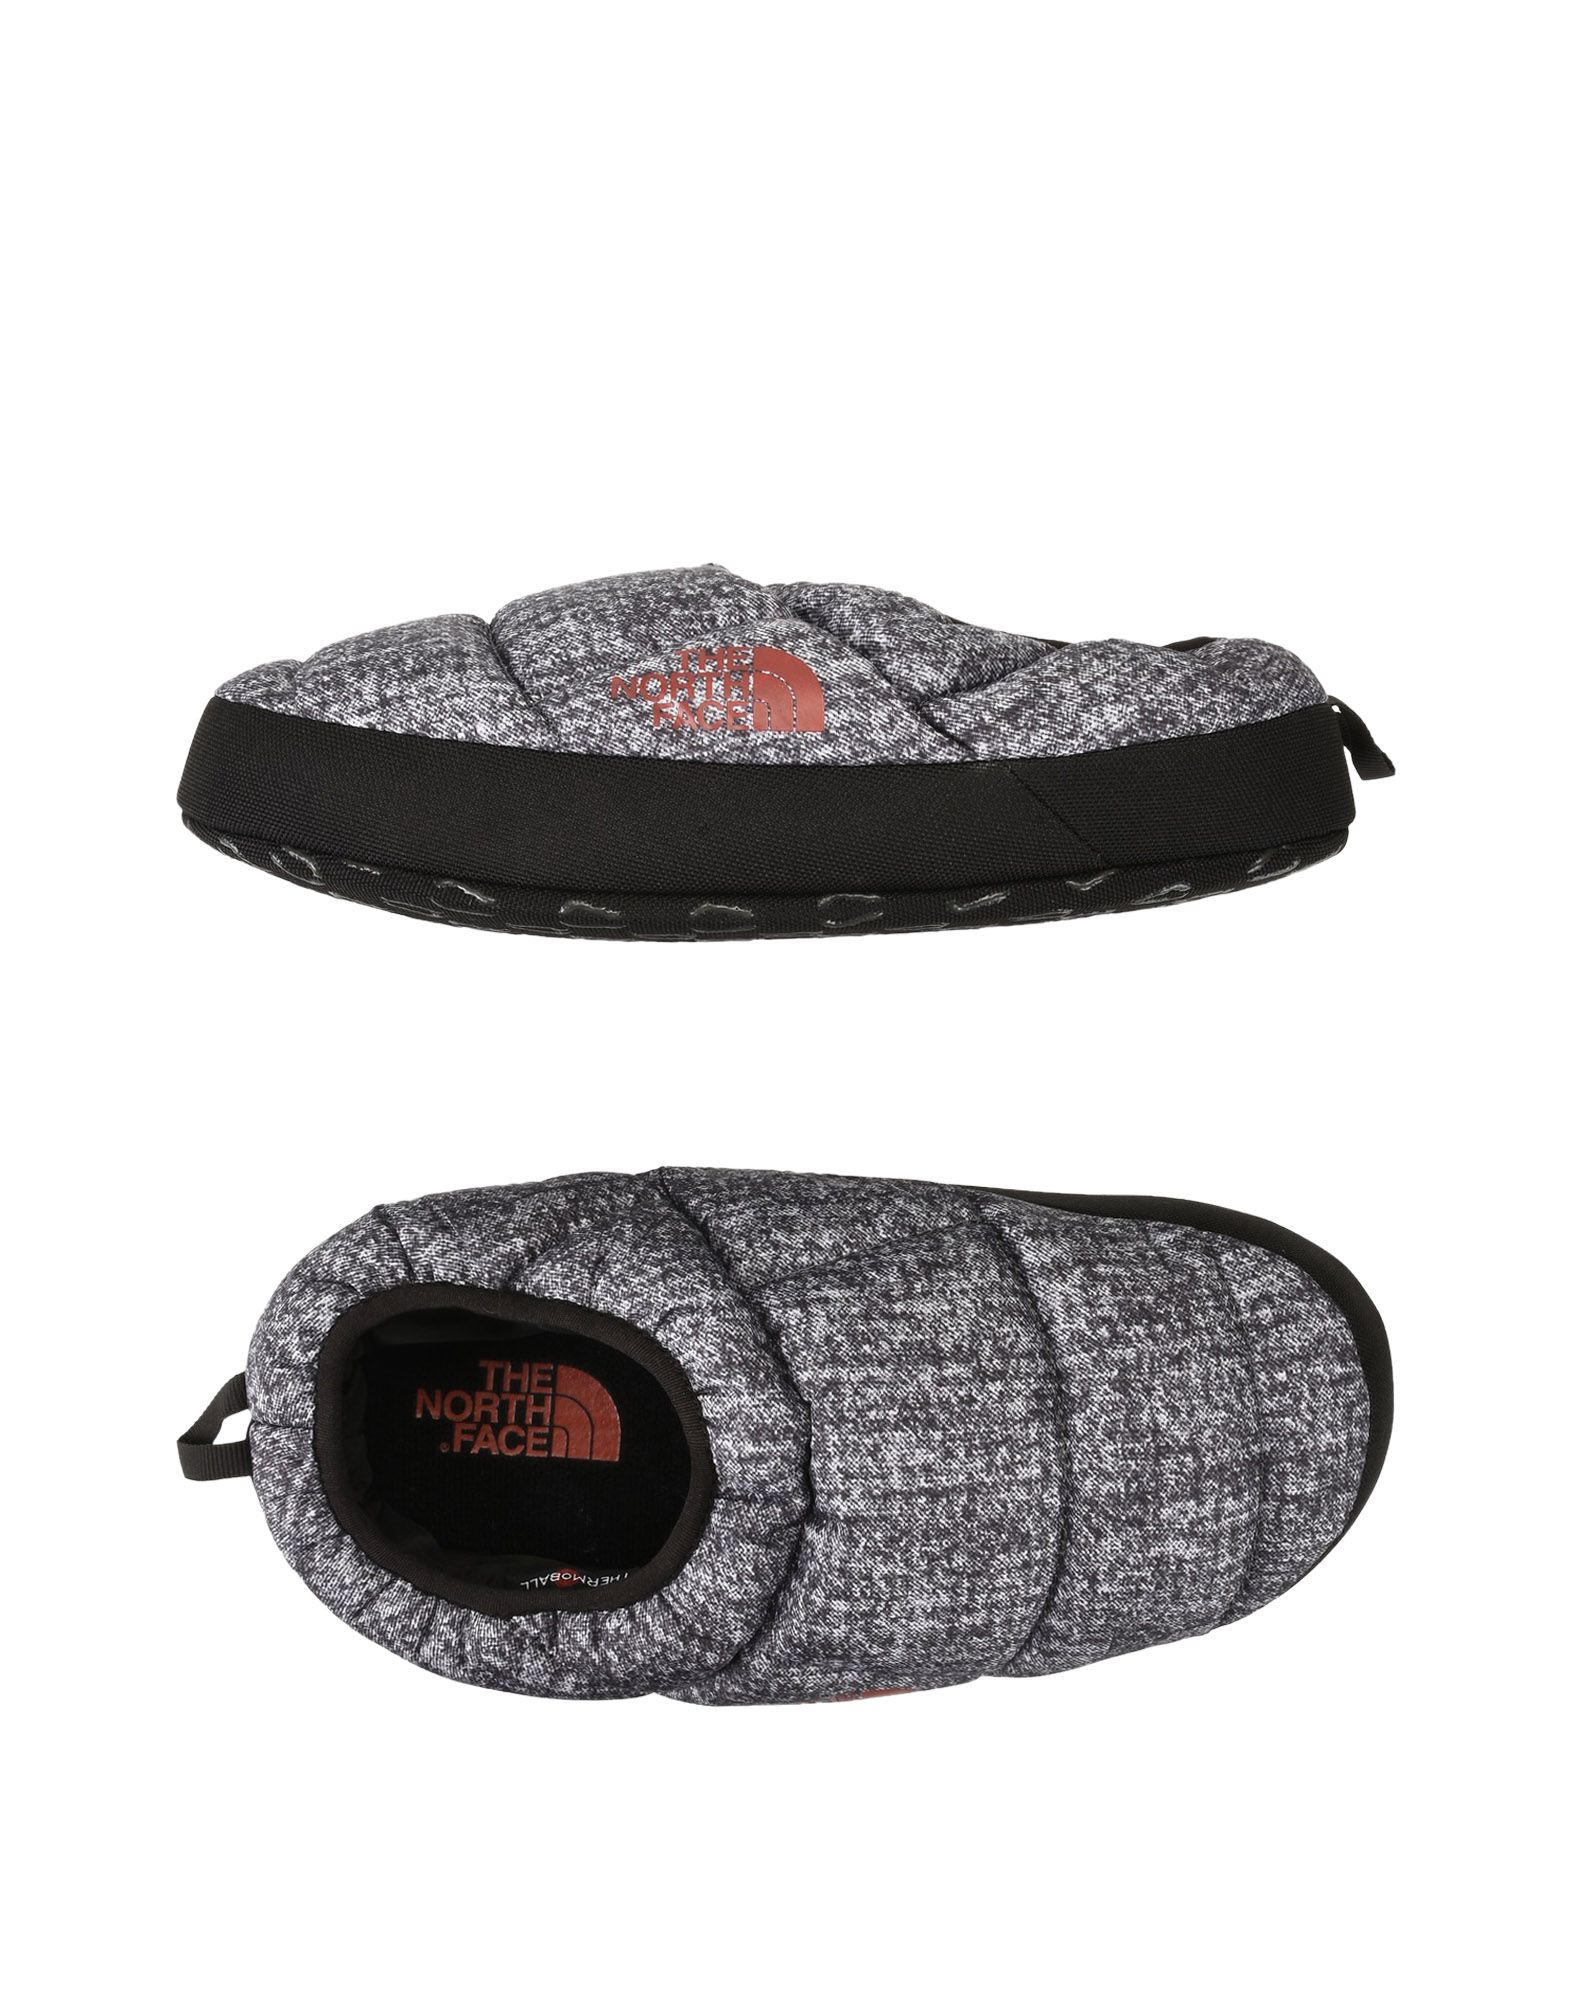 Pantofole The North Face Tent Mule Man - Uomo - 11339016XB